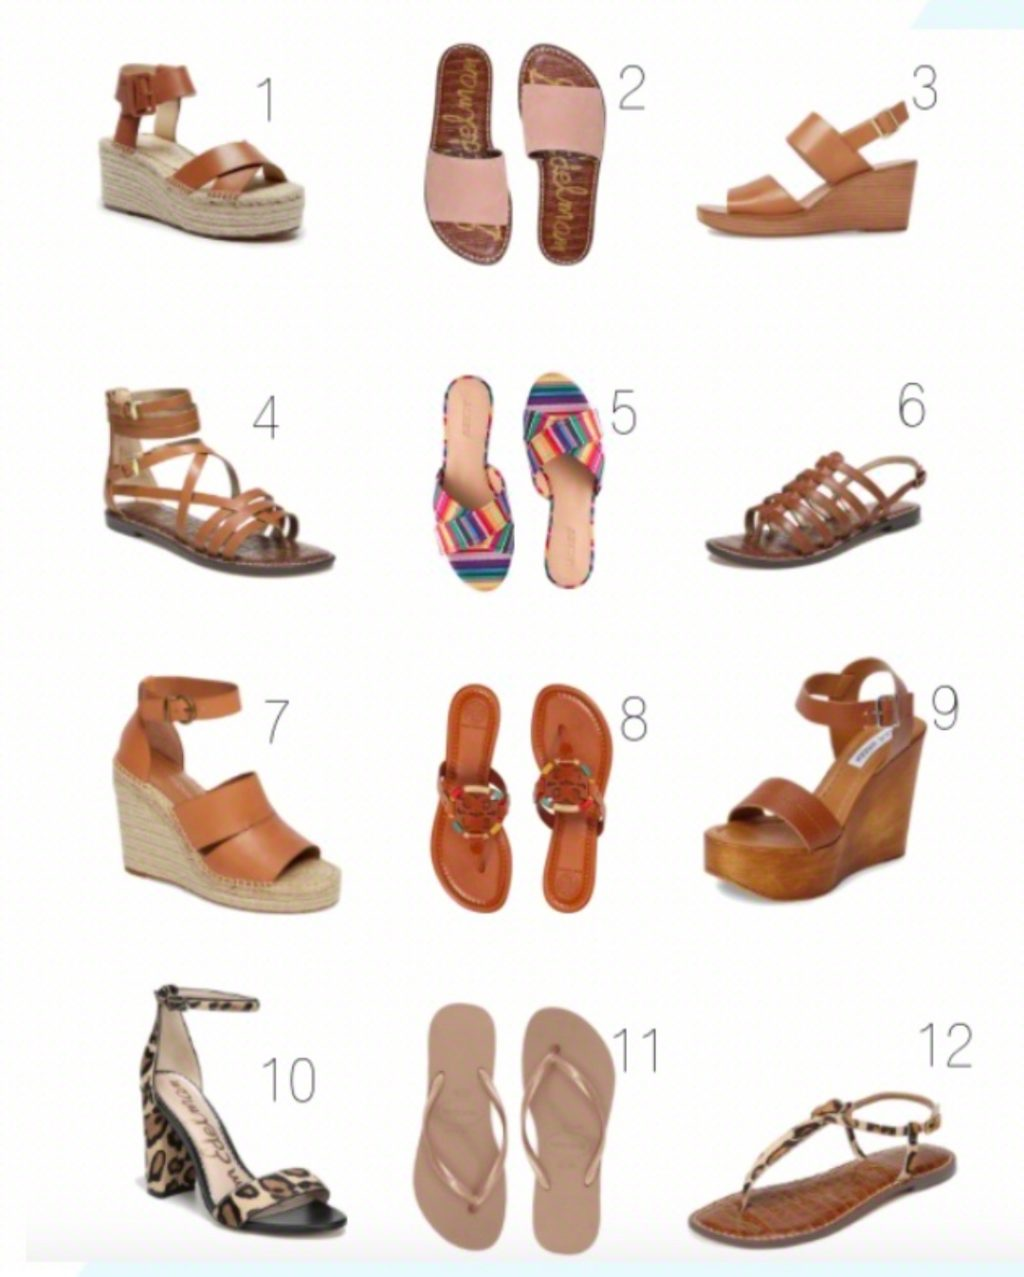 sugarplum style spring shoes